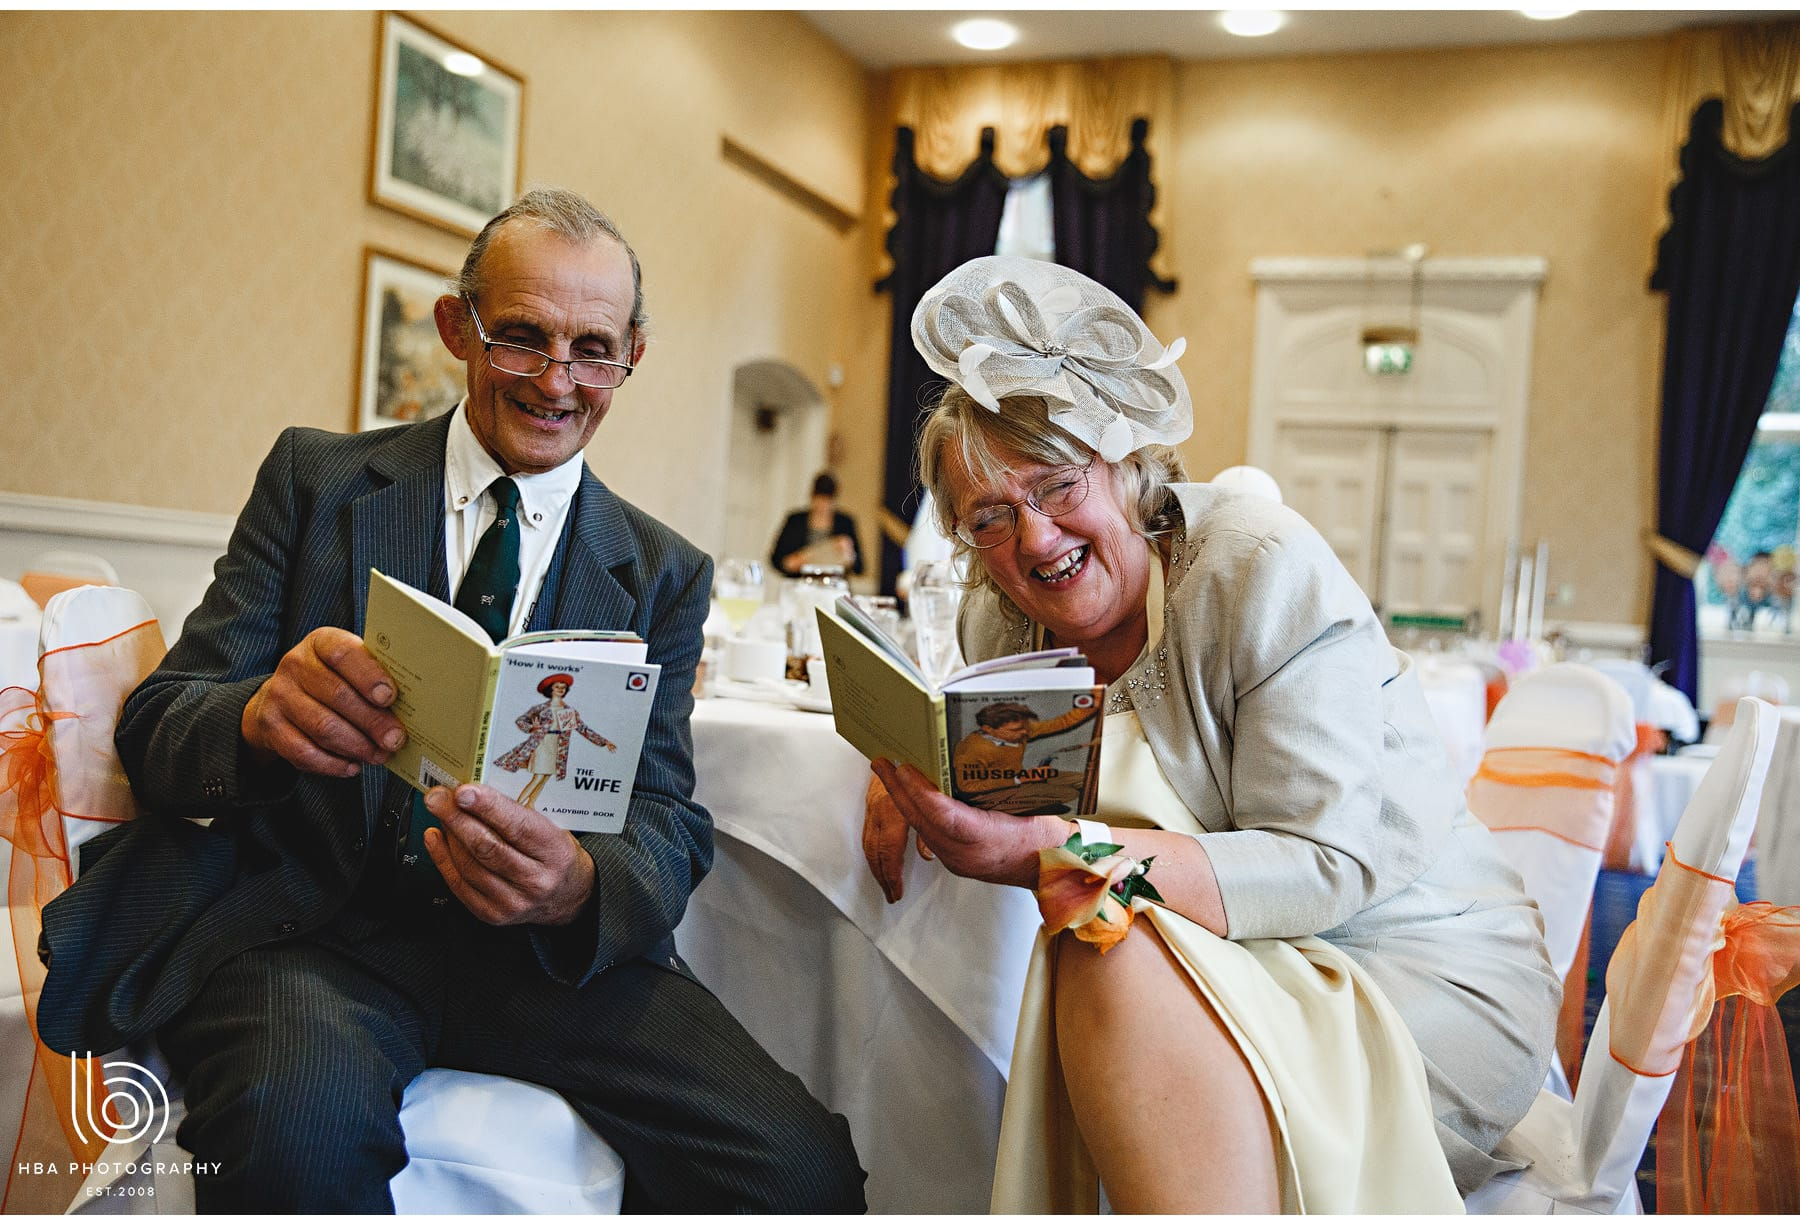 the mother of the bride and her brother laughing at a marriage book